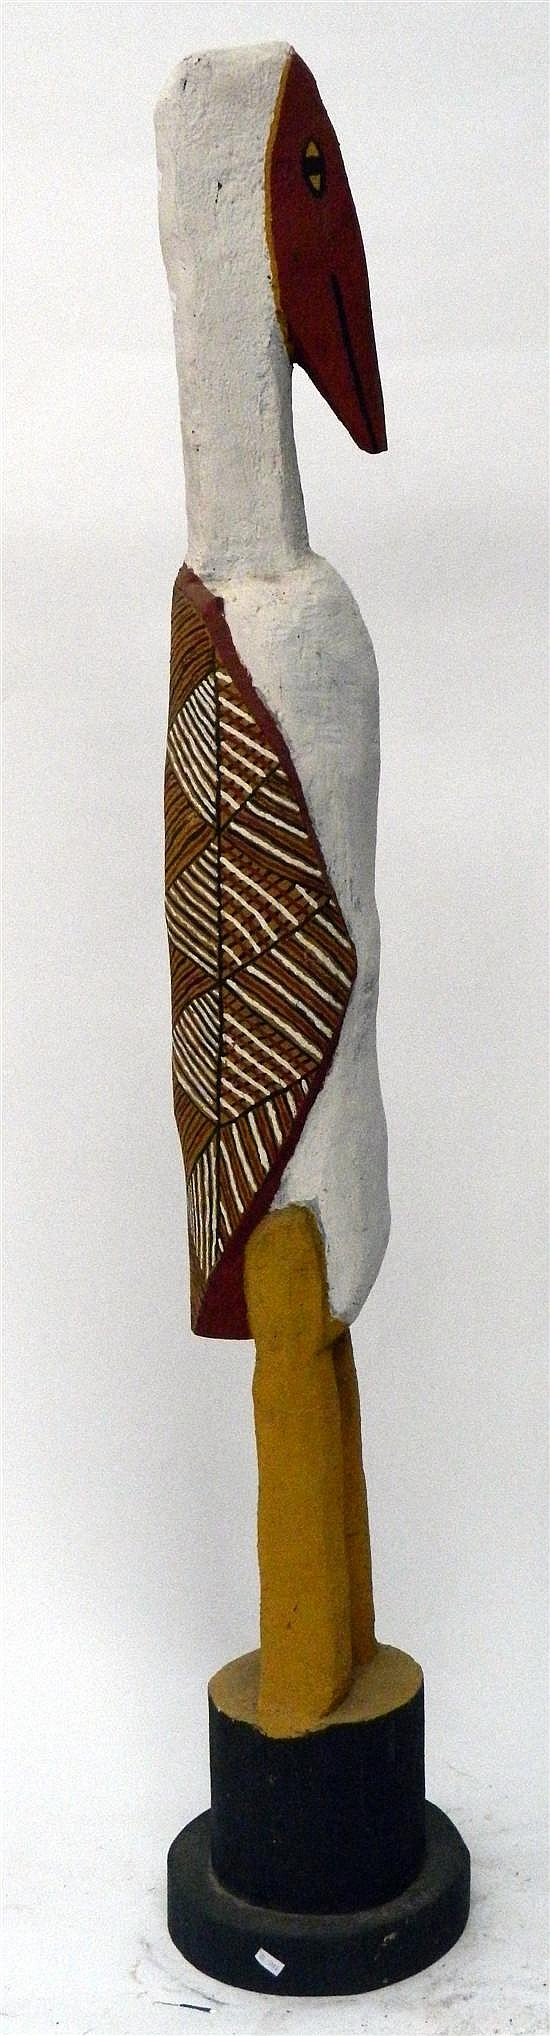 Artist Unknown Tiwi Islands Bird Figure 1992 Earth Pigments on Ironwood